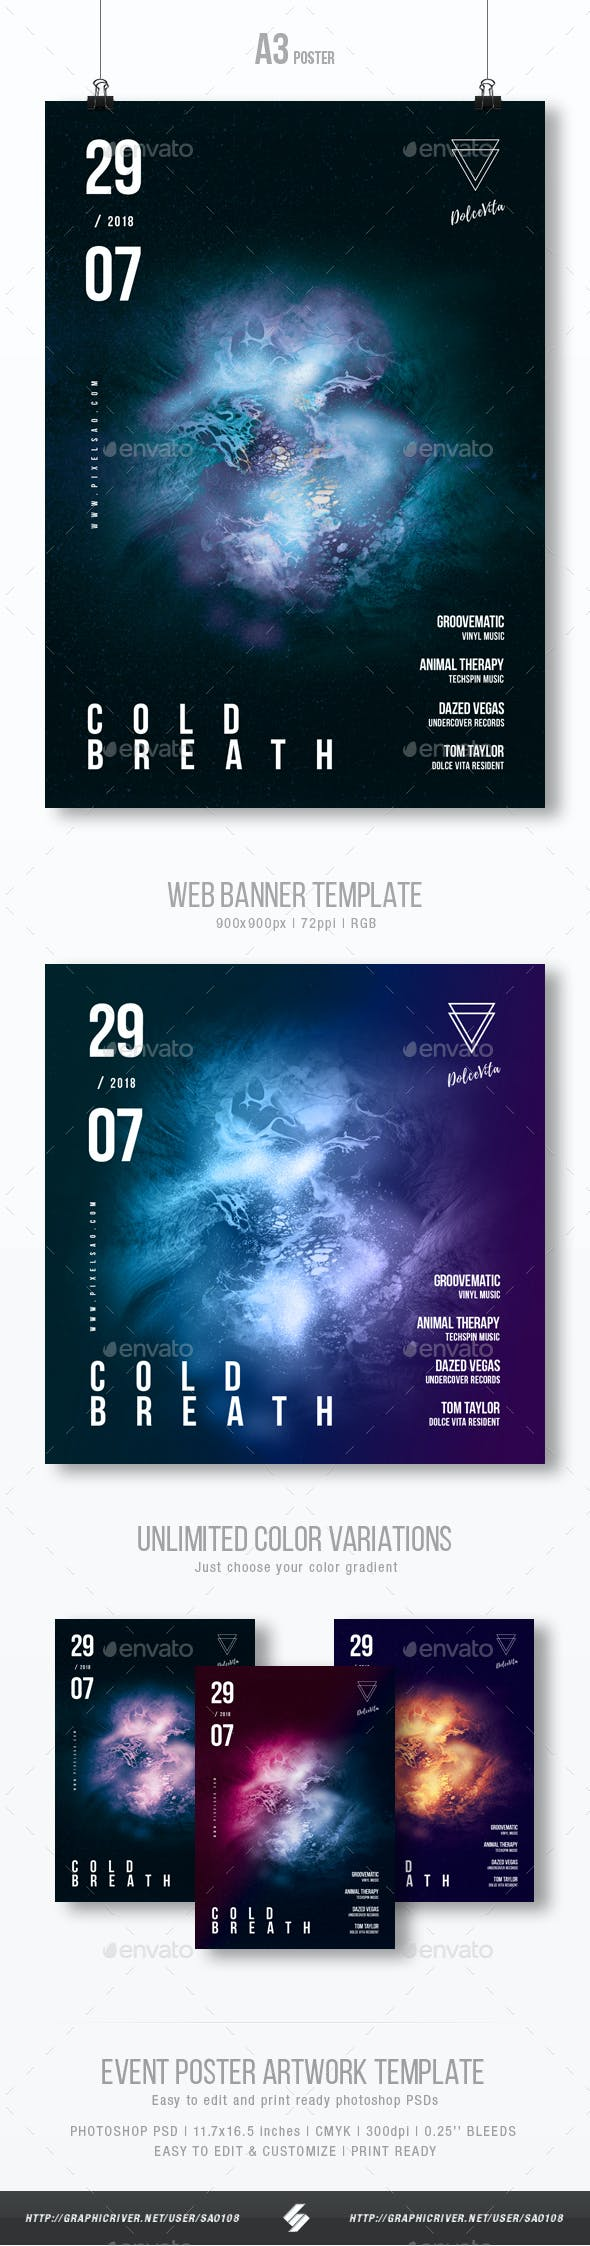 Cold Breath - Progressive Party Flyer / Poster Template A3